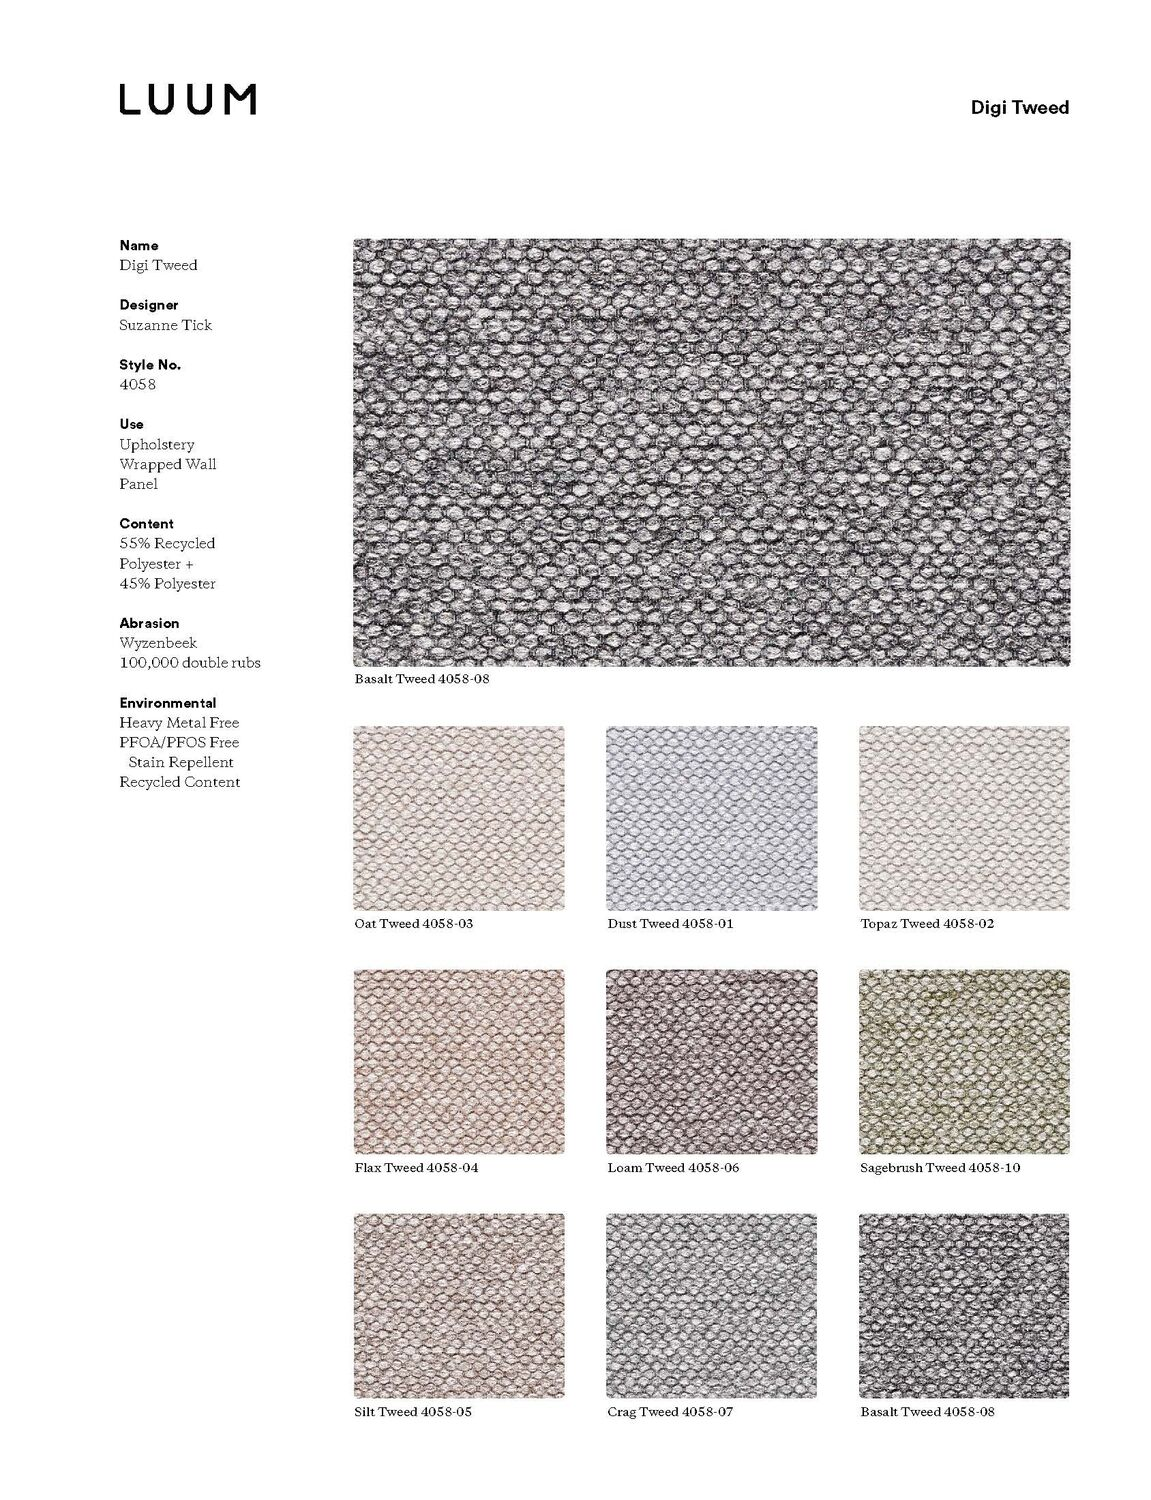 Digi Tweed - Topaz Tweed - 4058 - 02 Sample Card